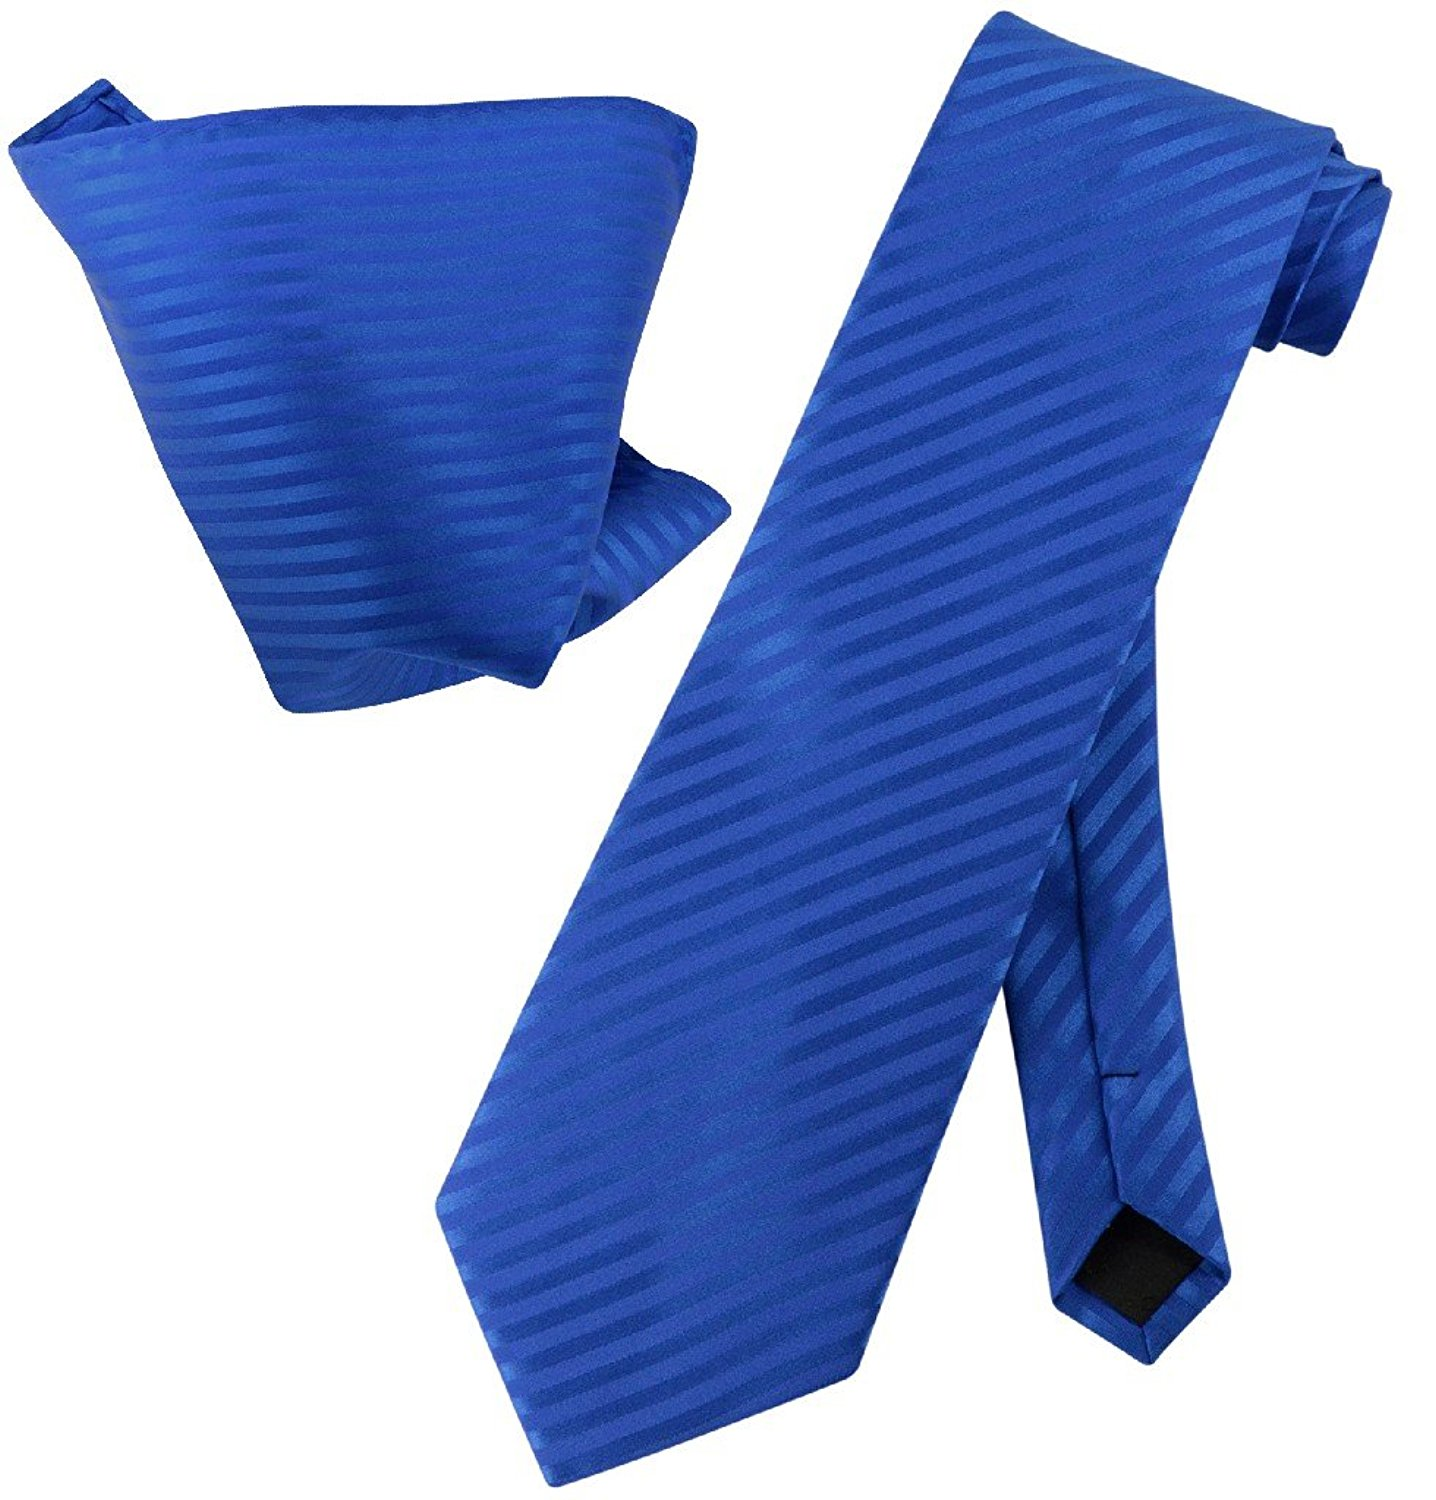 Vesuvio Napoli ROYAL BLUE Striped NeckTie & Handkerchief Matching Neck Tie Set